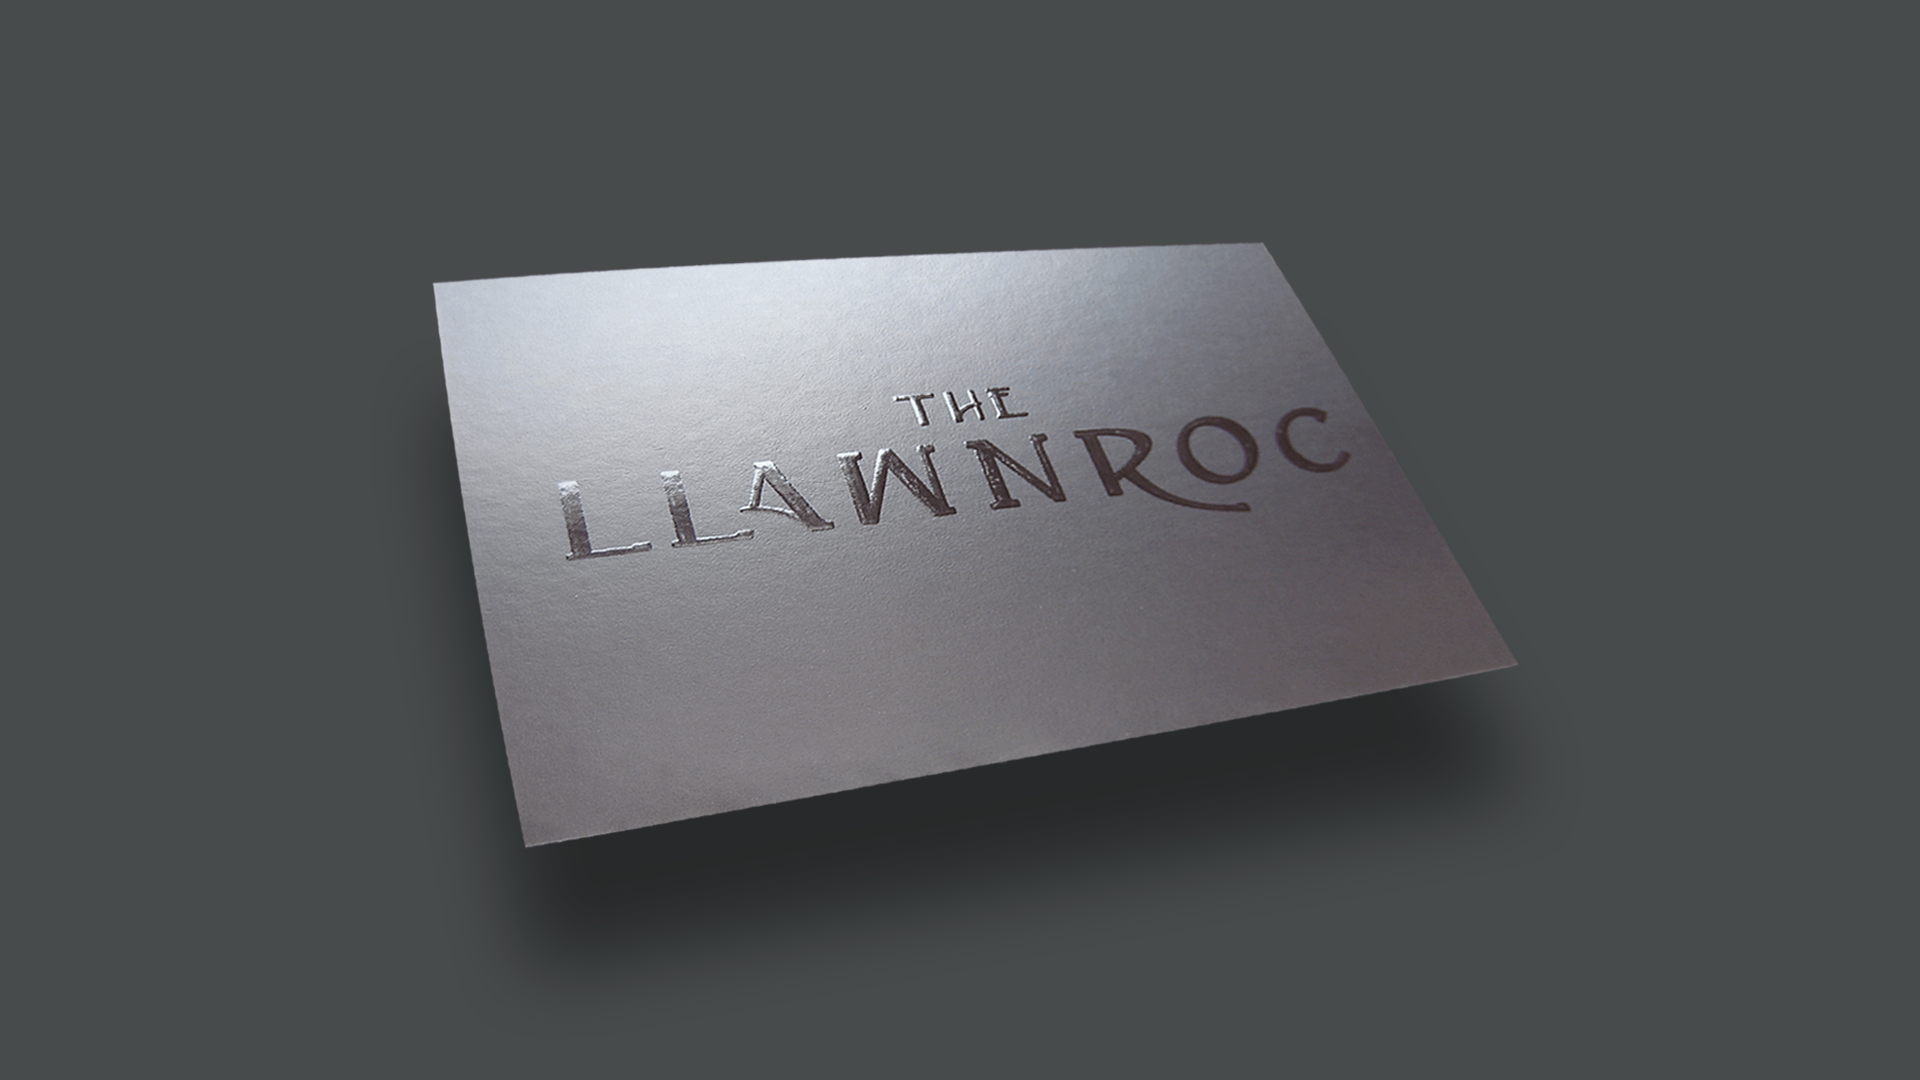 The Llawnroc